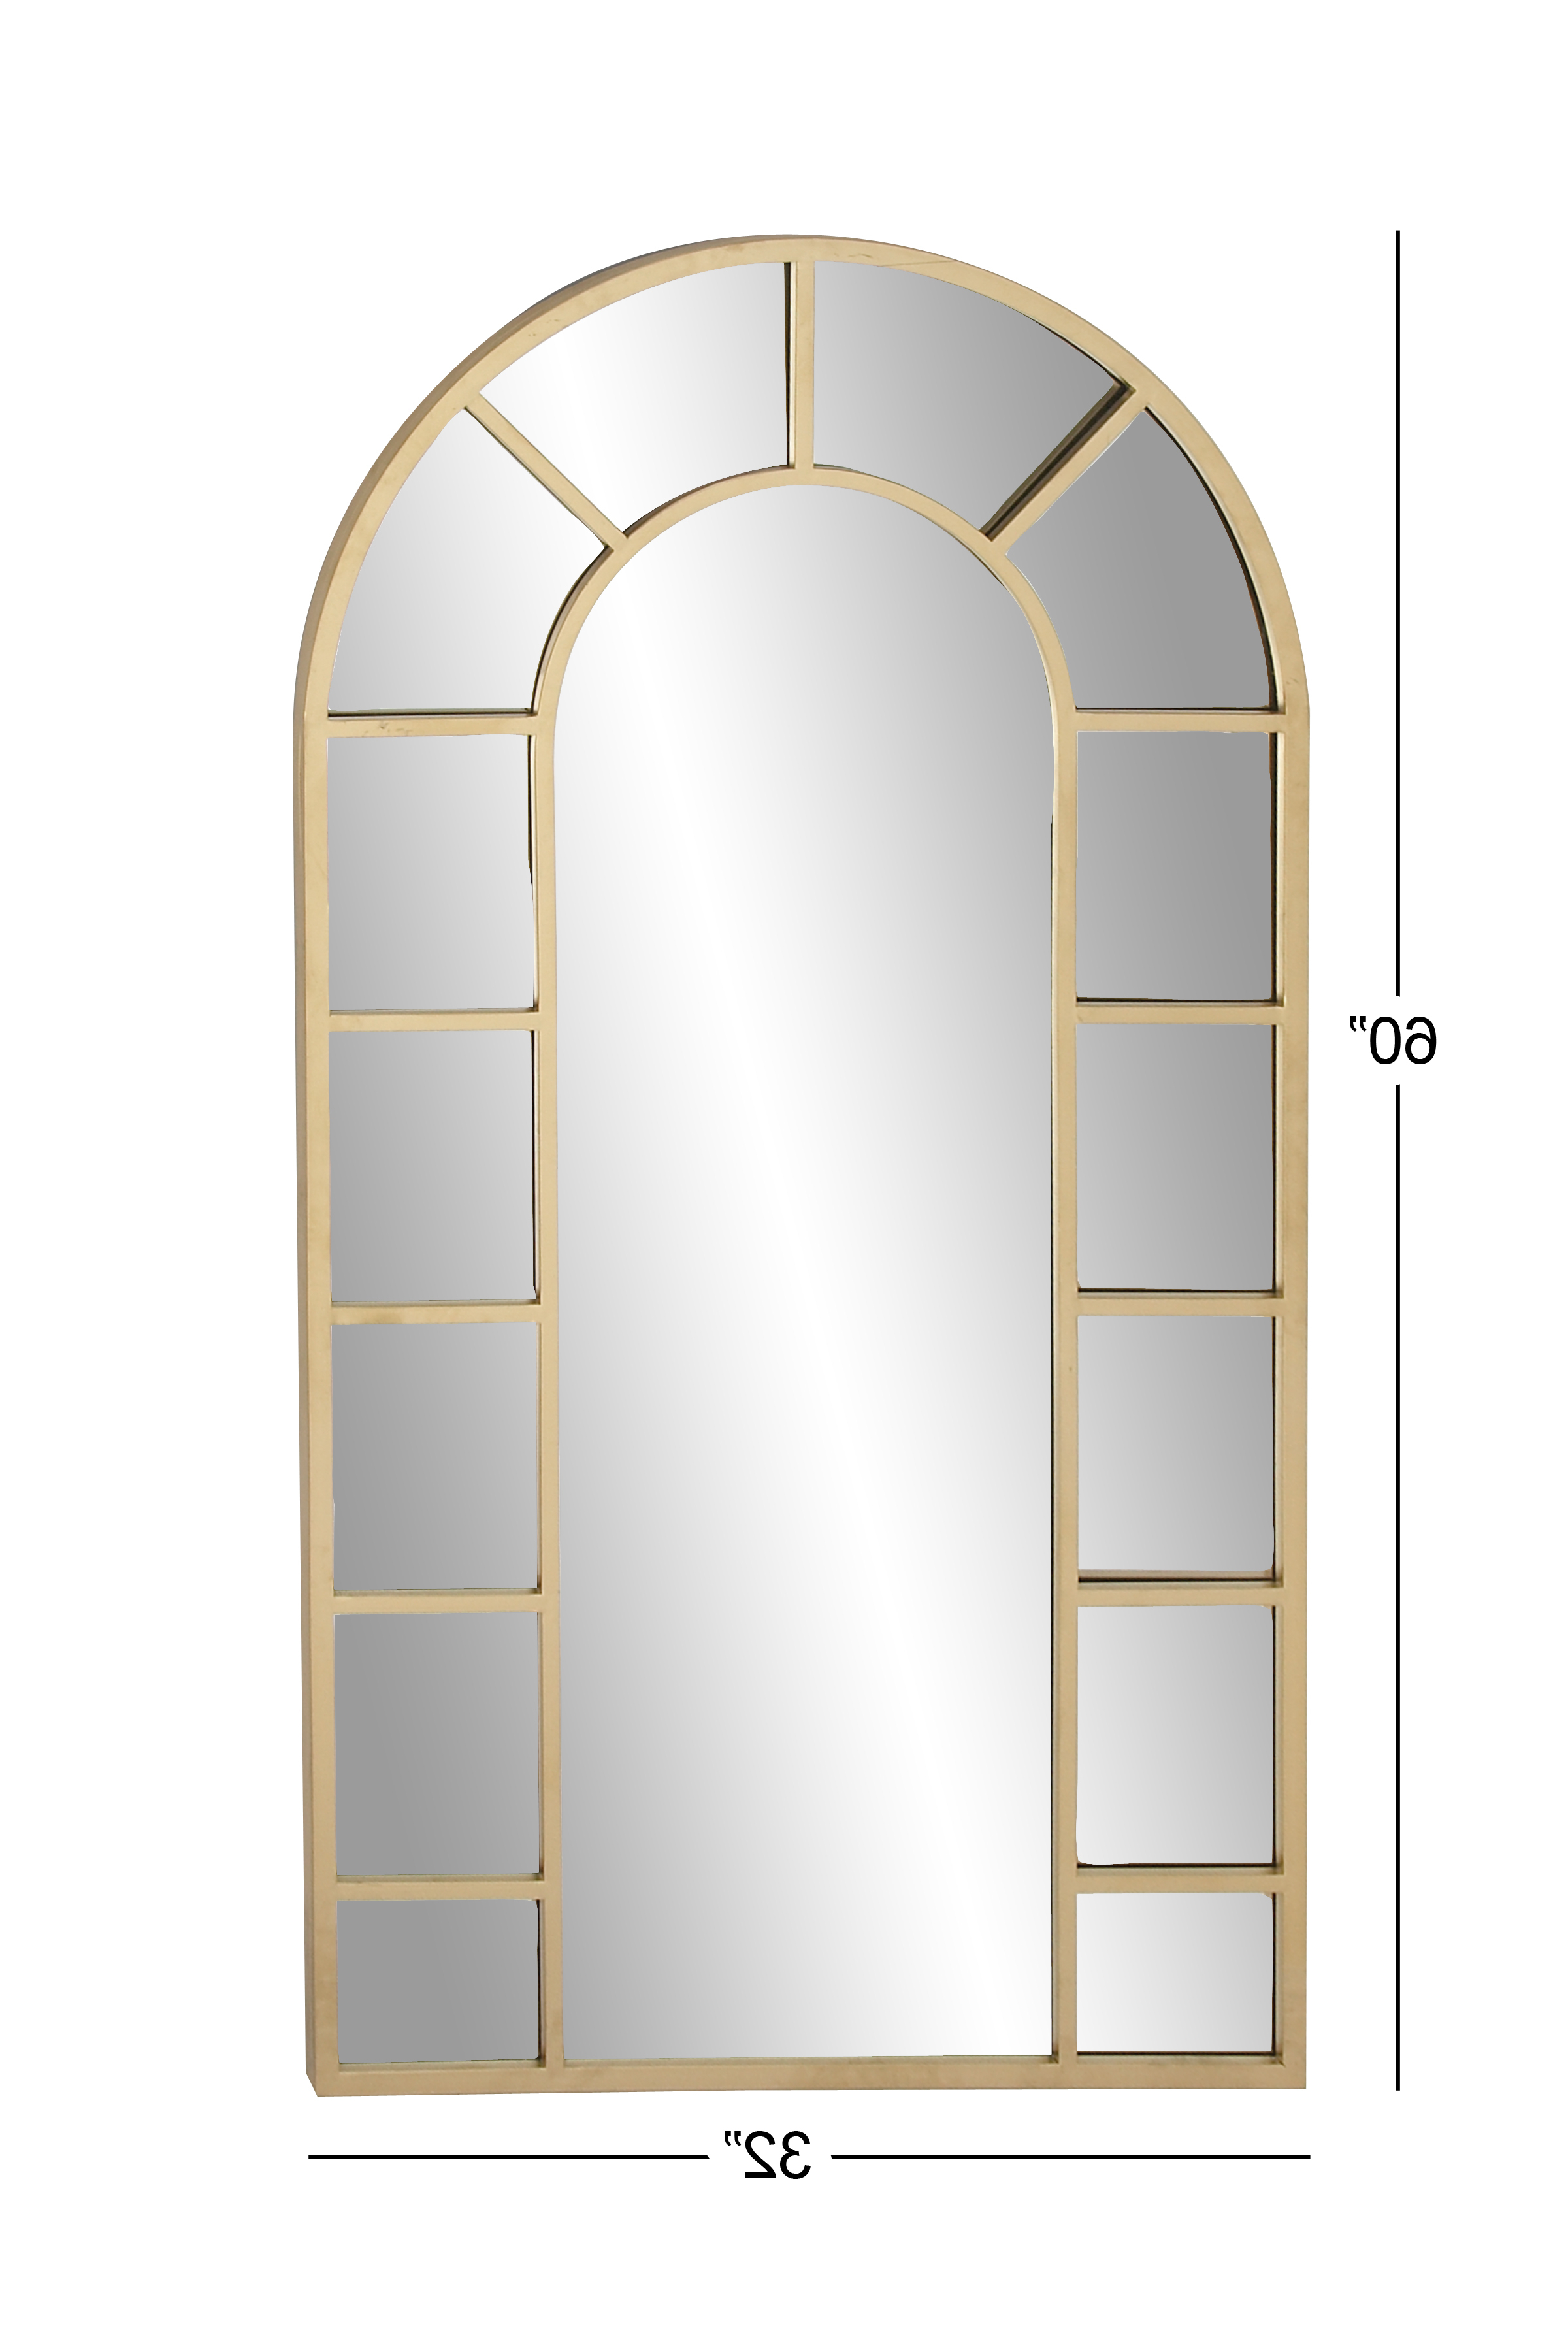 Fashionable Decmode Contemporary Wood And Metal Arched Gold Wall Mirror, Gold Throughout Arch Vertical Wall Mirrors (View 5 of 20)